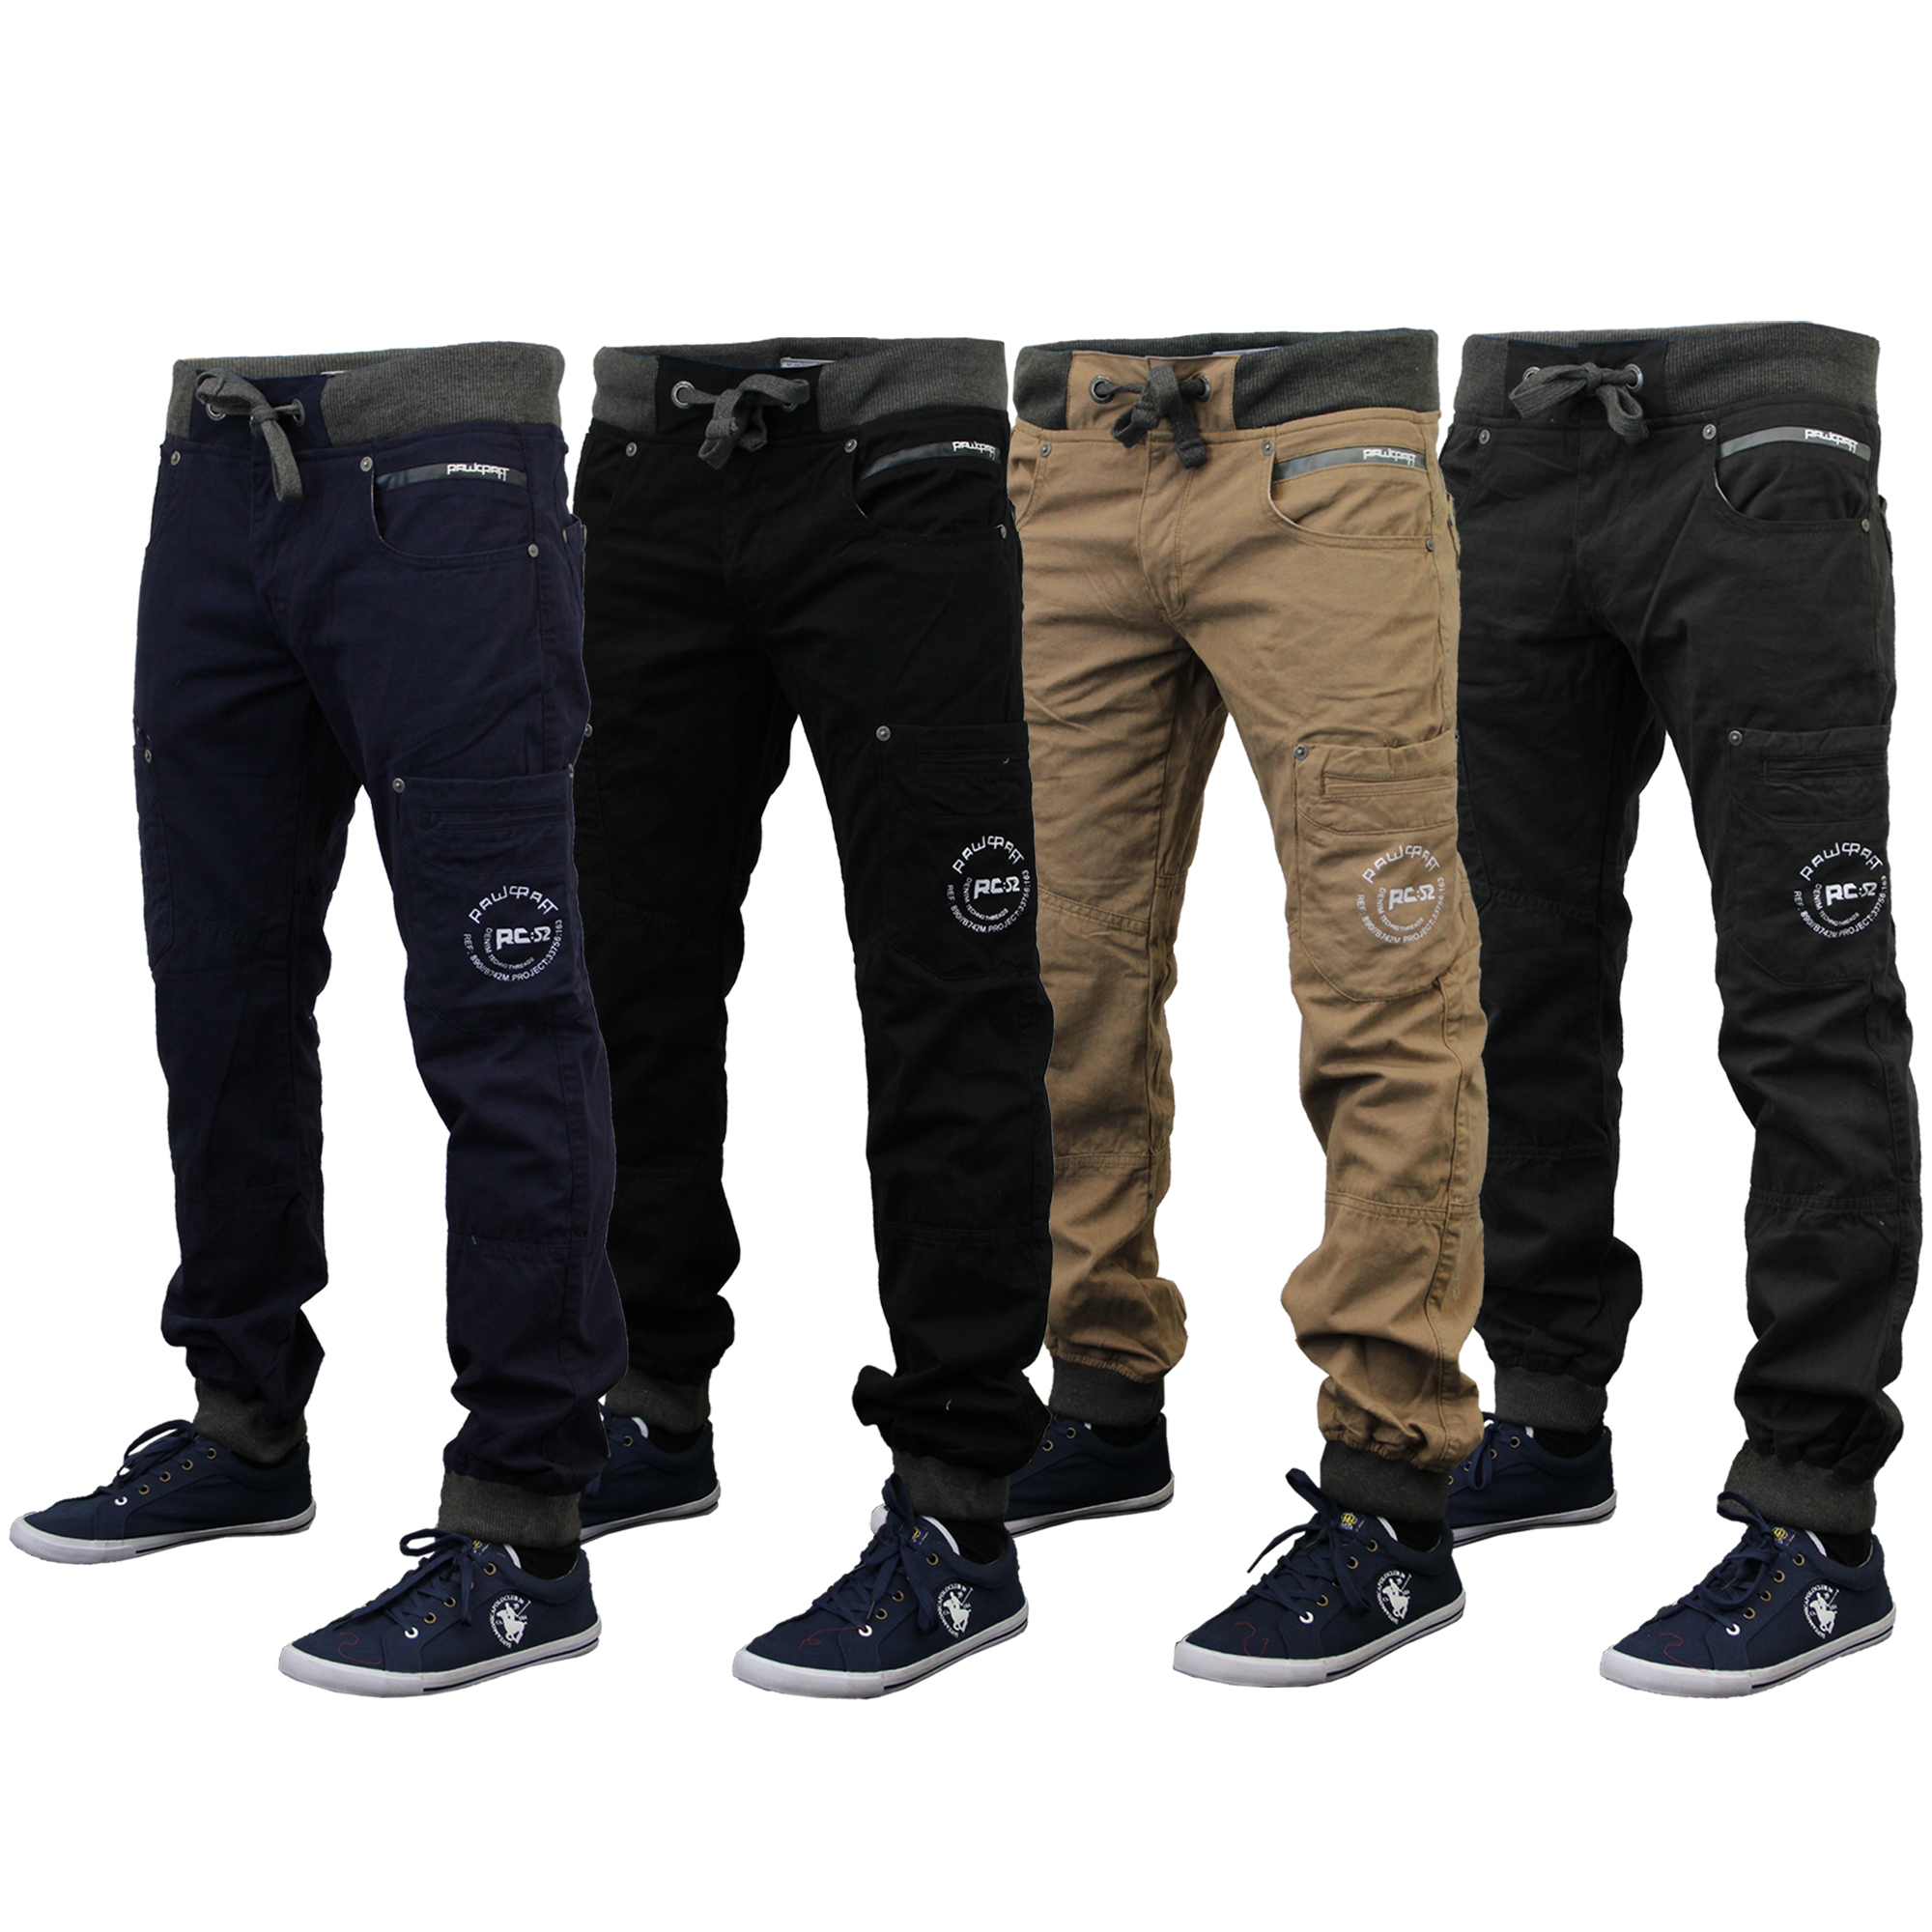 homme chino jeans rawcraft combat pantalon de surv tement bas pantalon revers casual nouveau. Black Bedroom Furniture Sets. Home Design Ideas